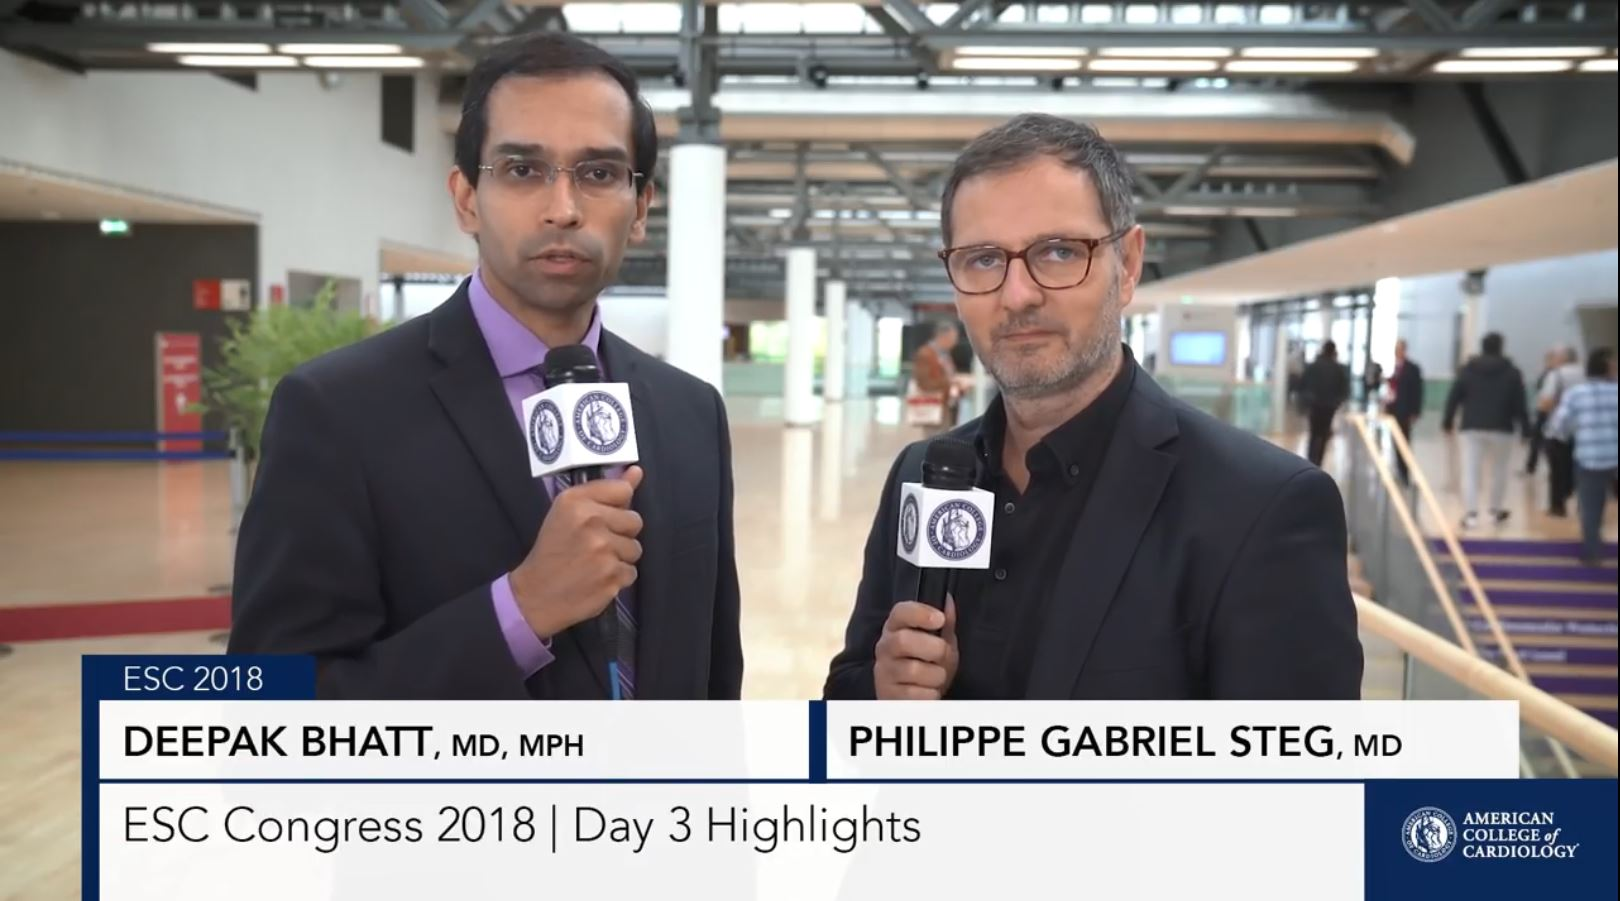 ESC Congress 2018 | Day 3 Highlights